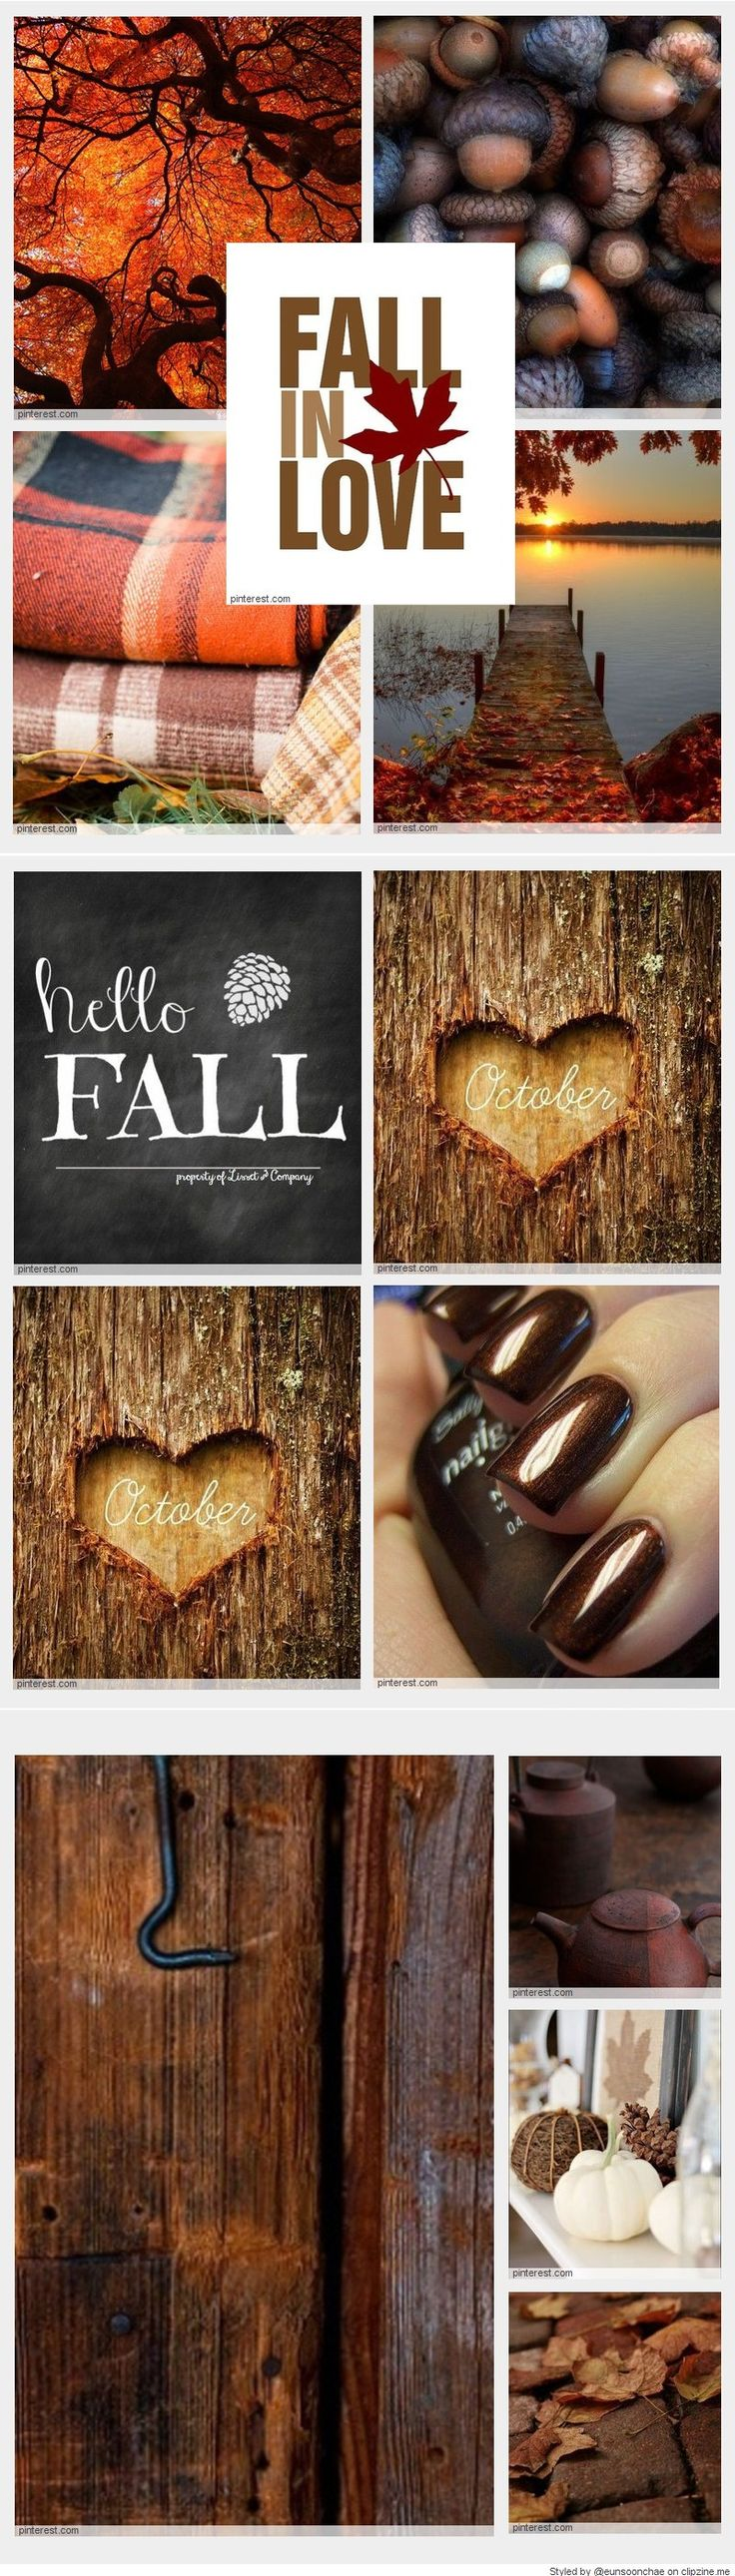 Hello Autumn...Fall In LOVE